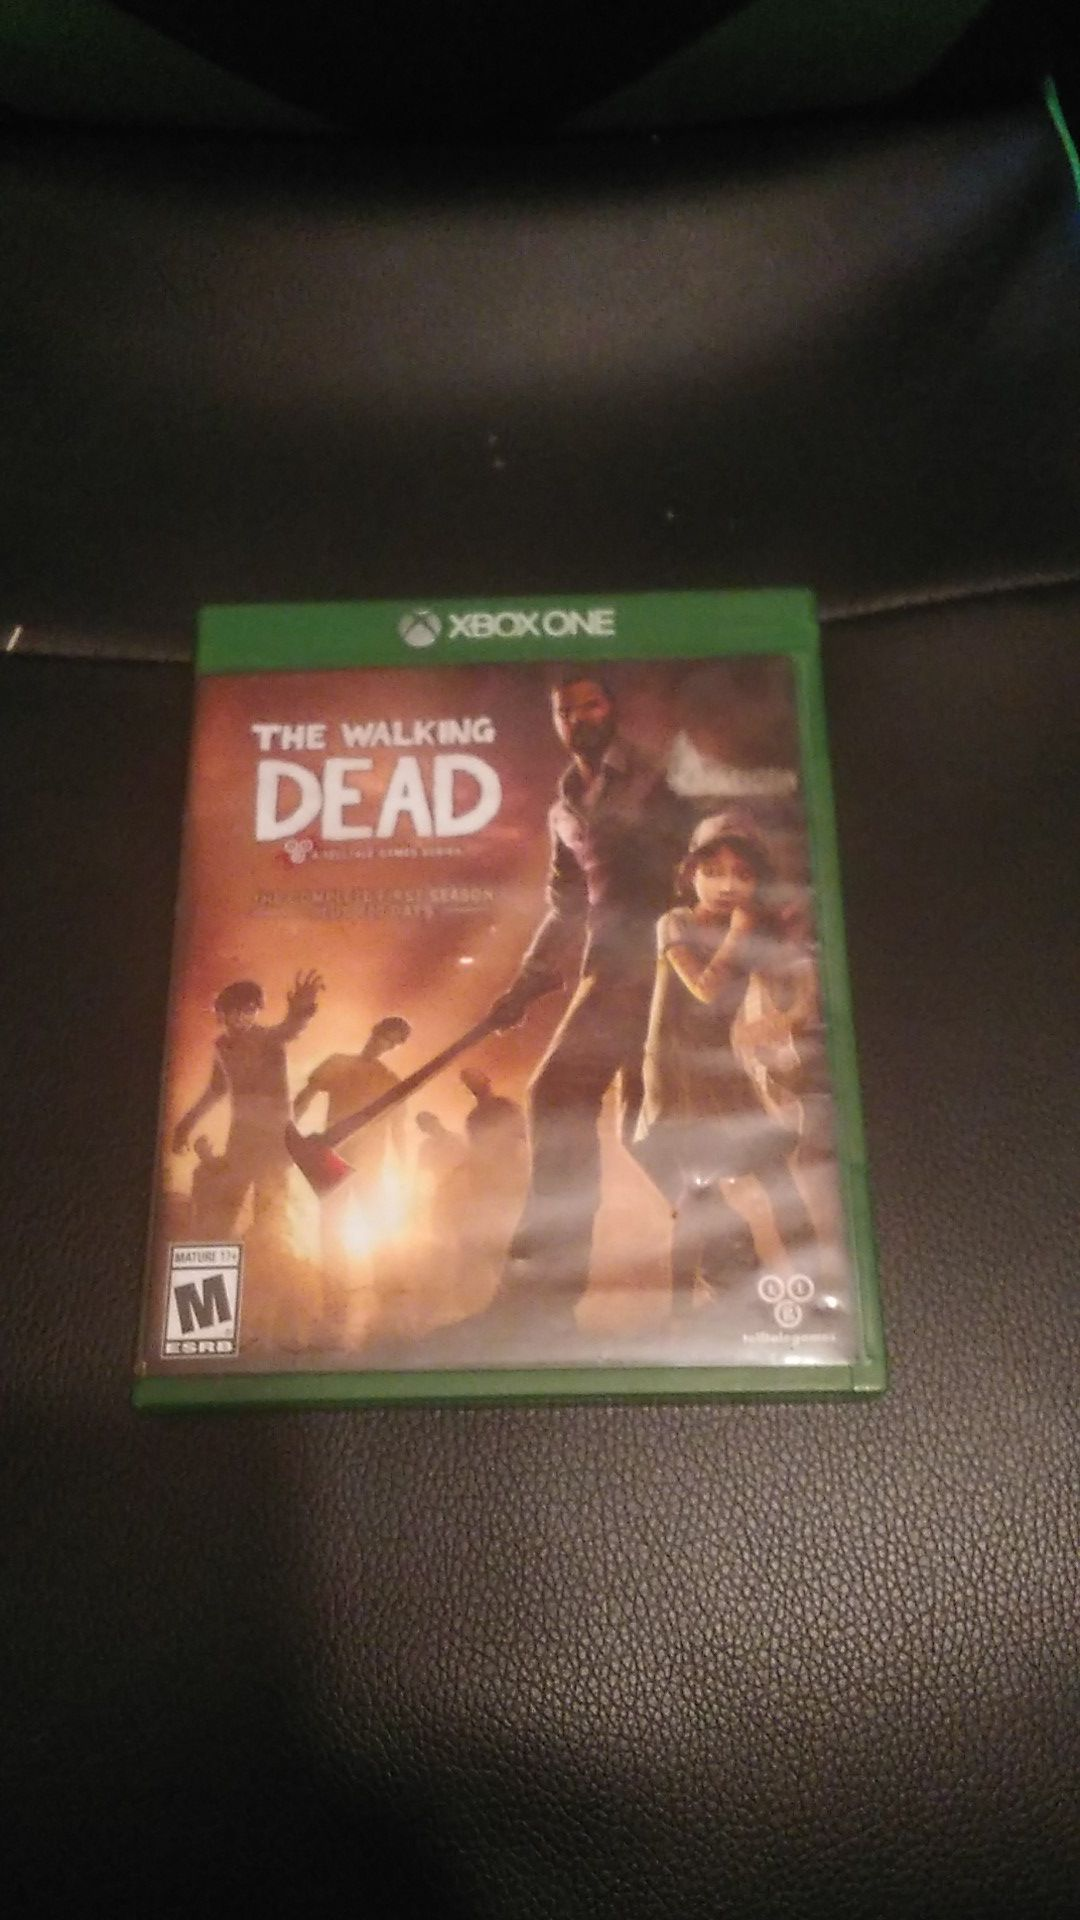 Xbox one the walking dead game. Name writtent on back.